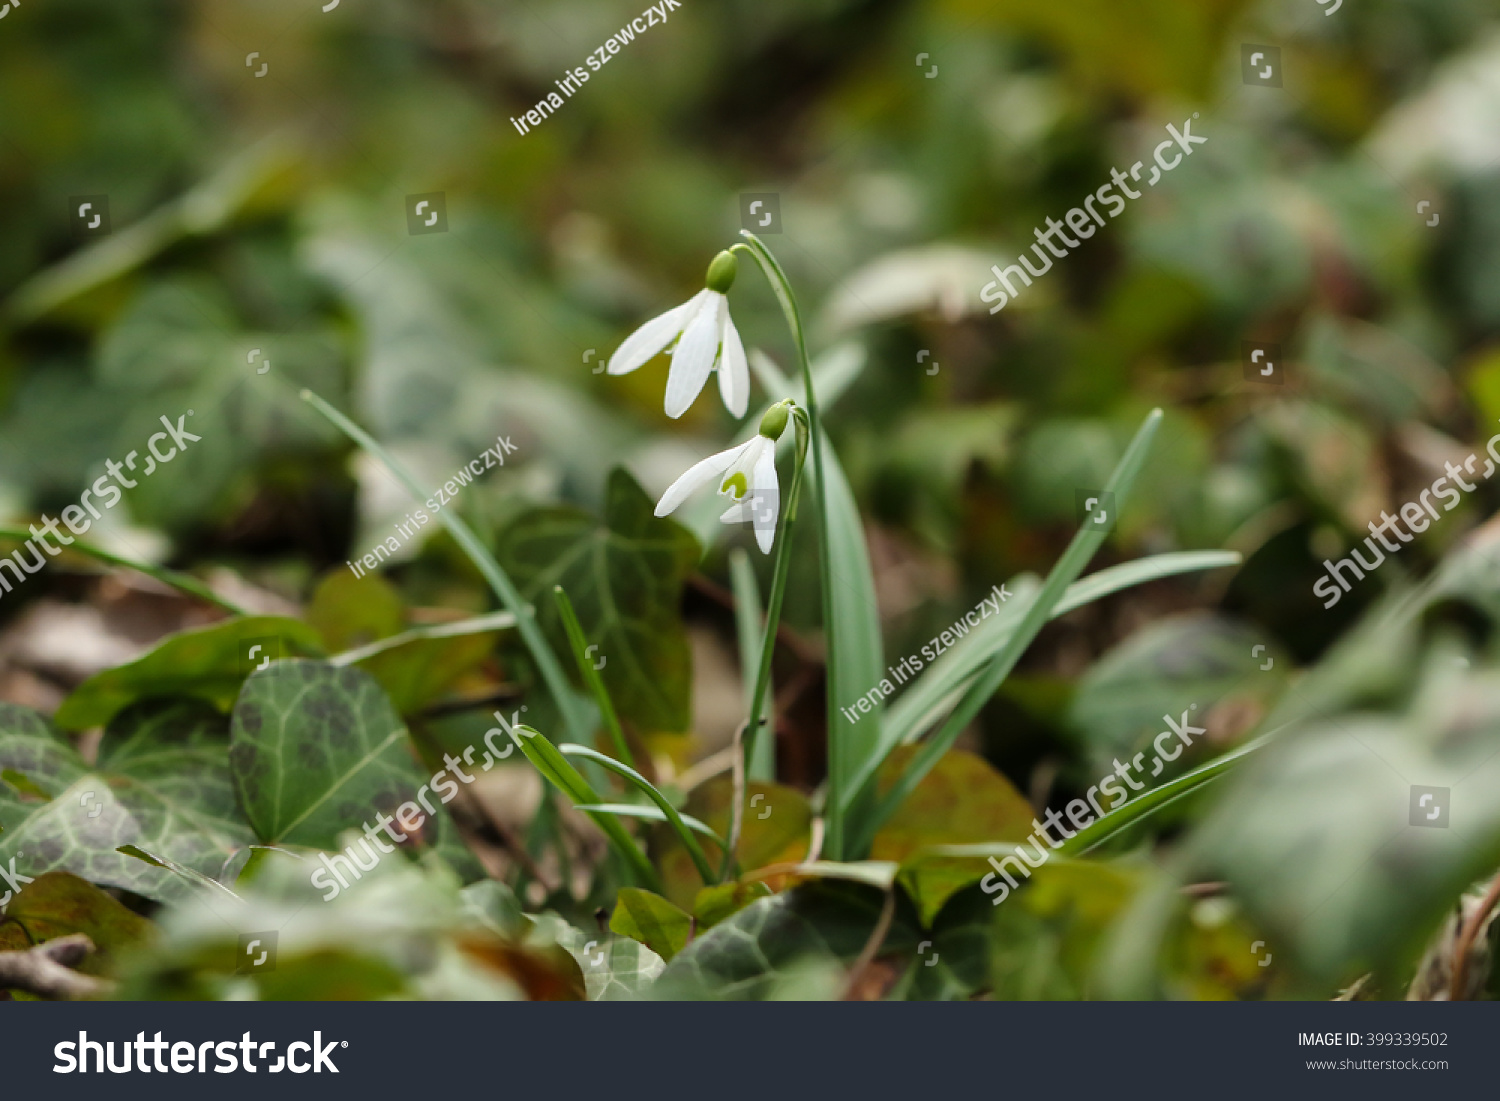 White Tiny Flowers Among Ivy Leaves Stock Photo Royalty Free